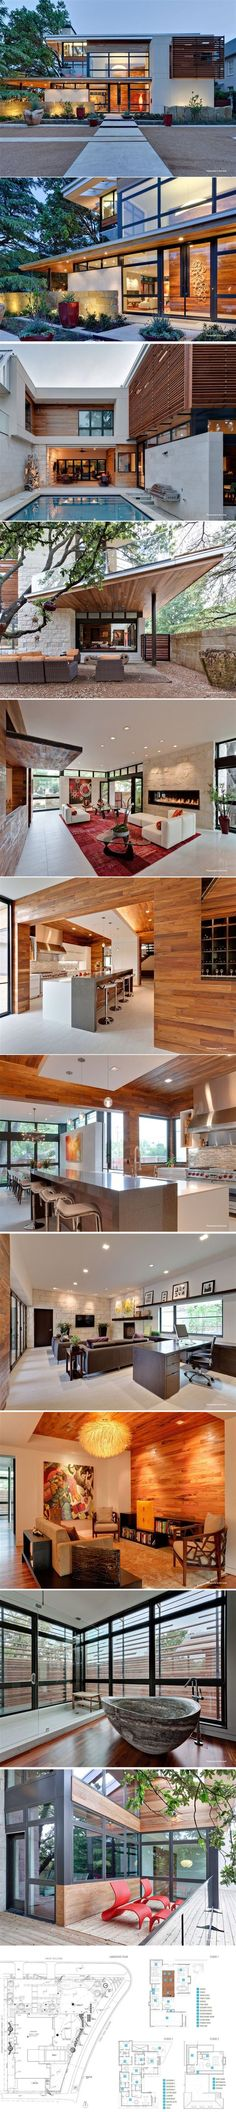 interior design for modern house.  Modern Montana Mountain Home House Architecture and